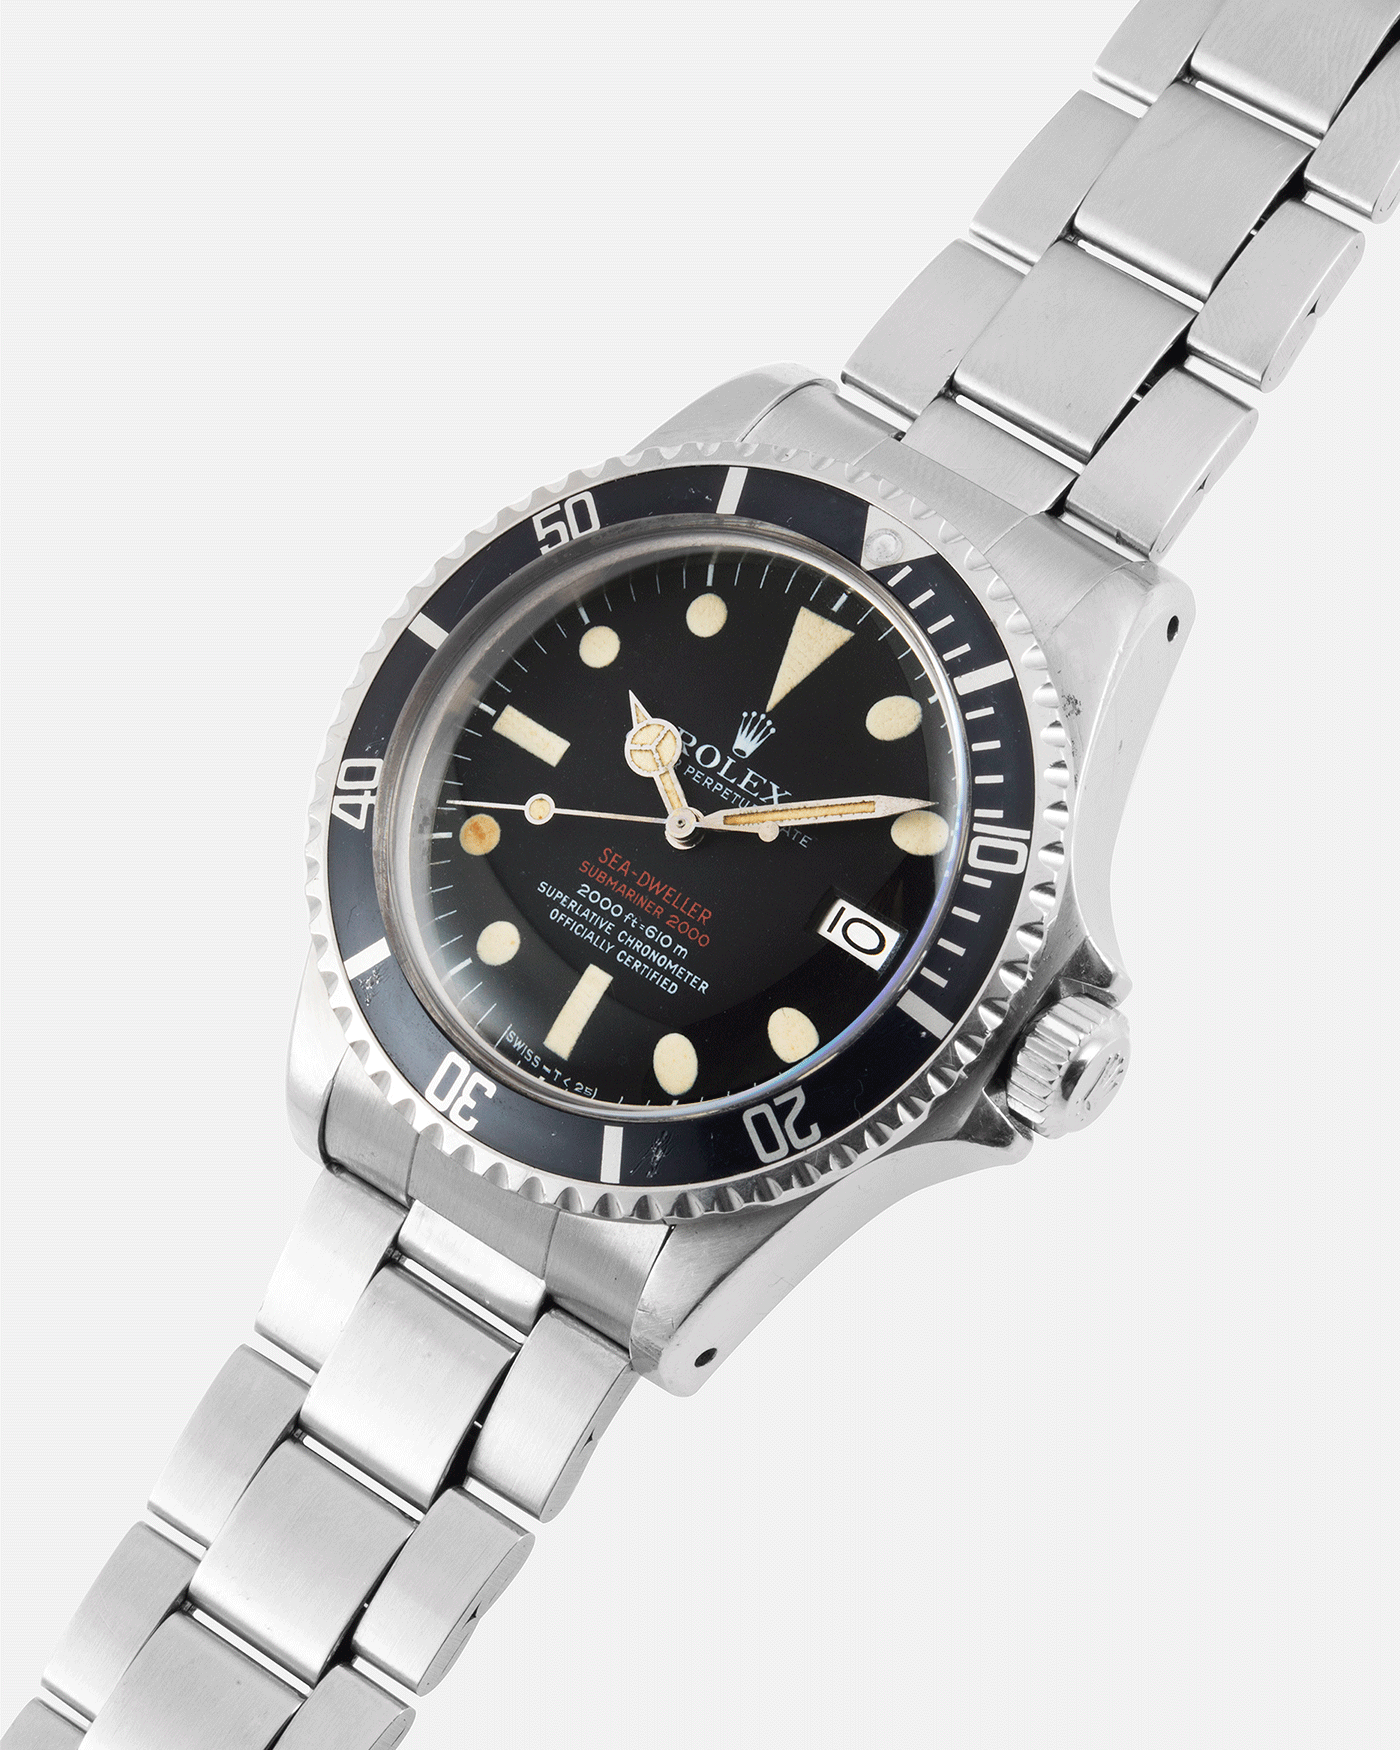 Rolex Double Red Sea Dweller Mk IV Sport Diver Watch | S.Song Vintage Watches For Sale